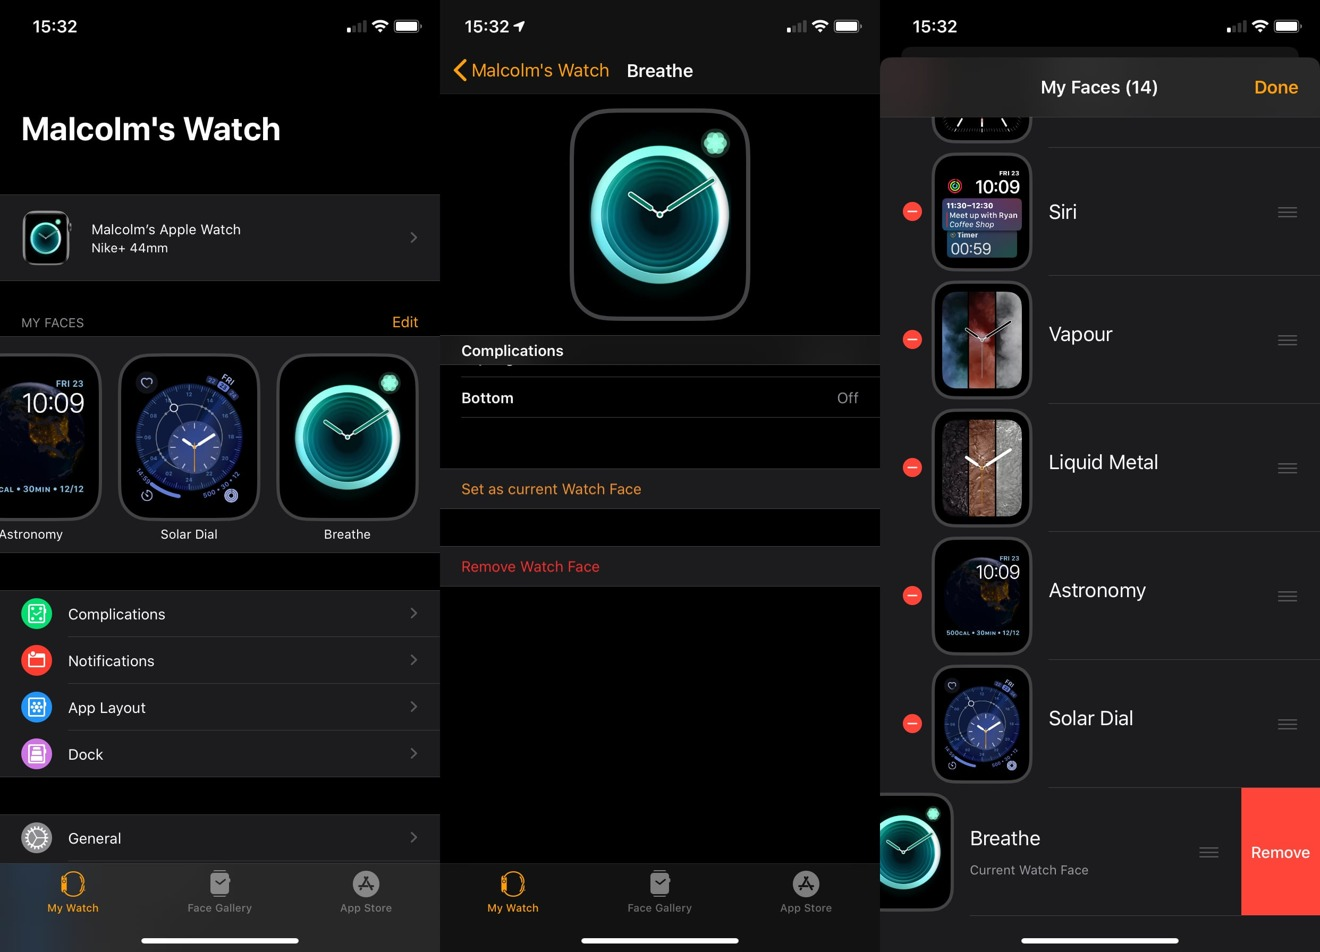 How to Add or Remove Watch Faces on Your Apple Watch